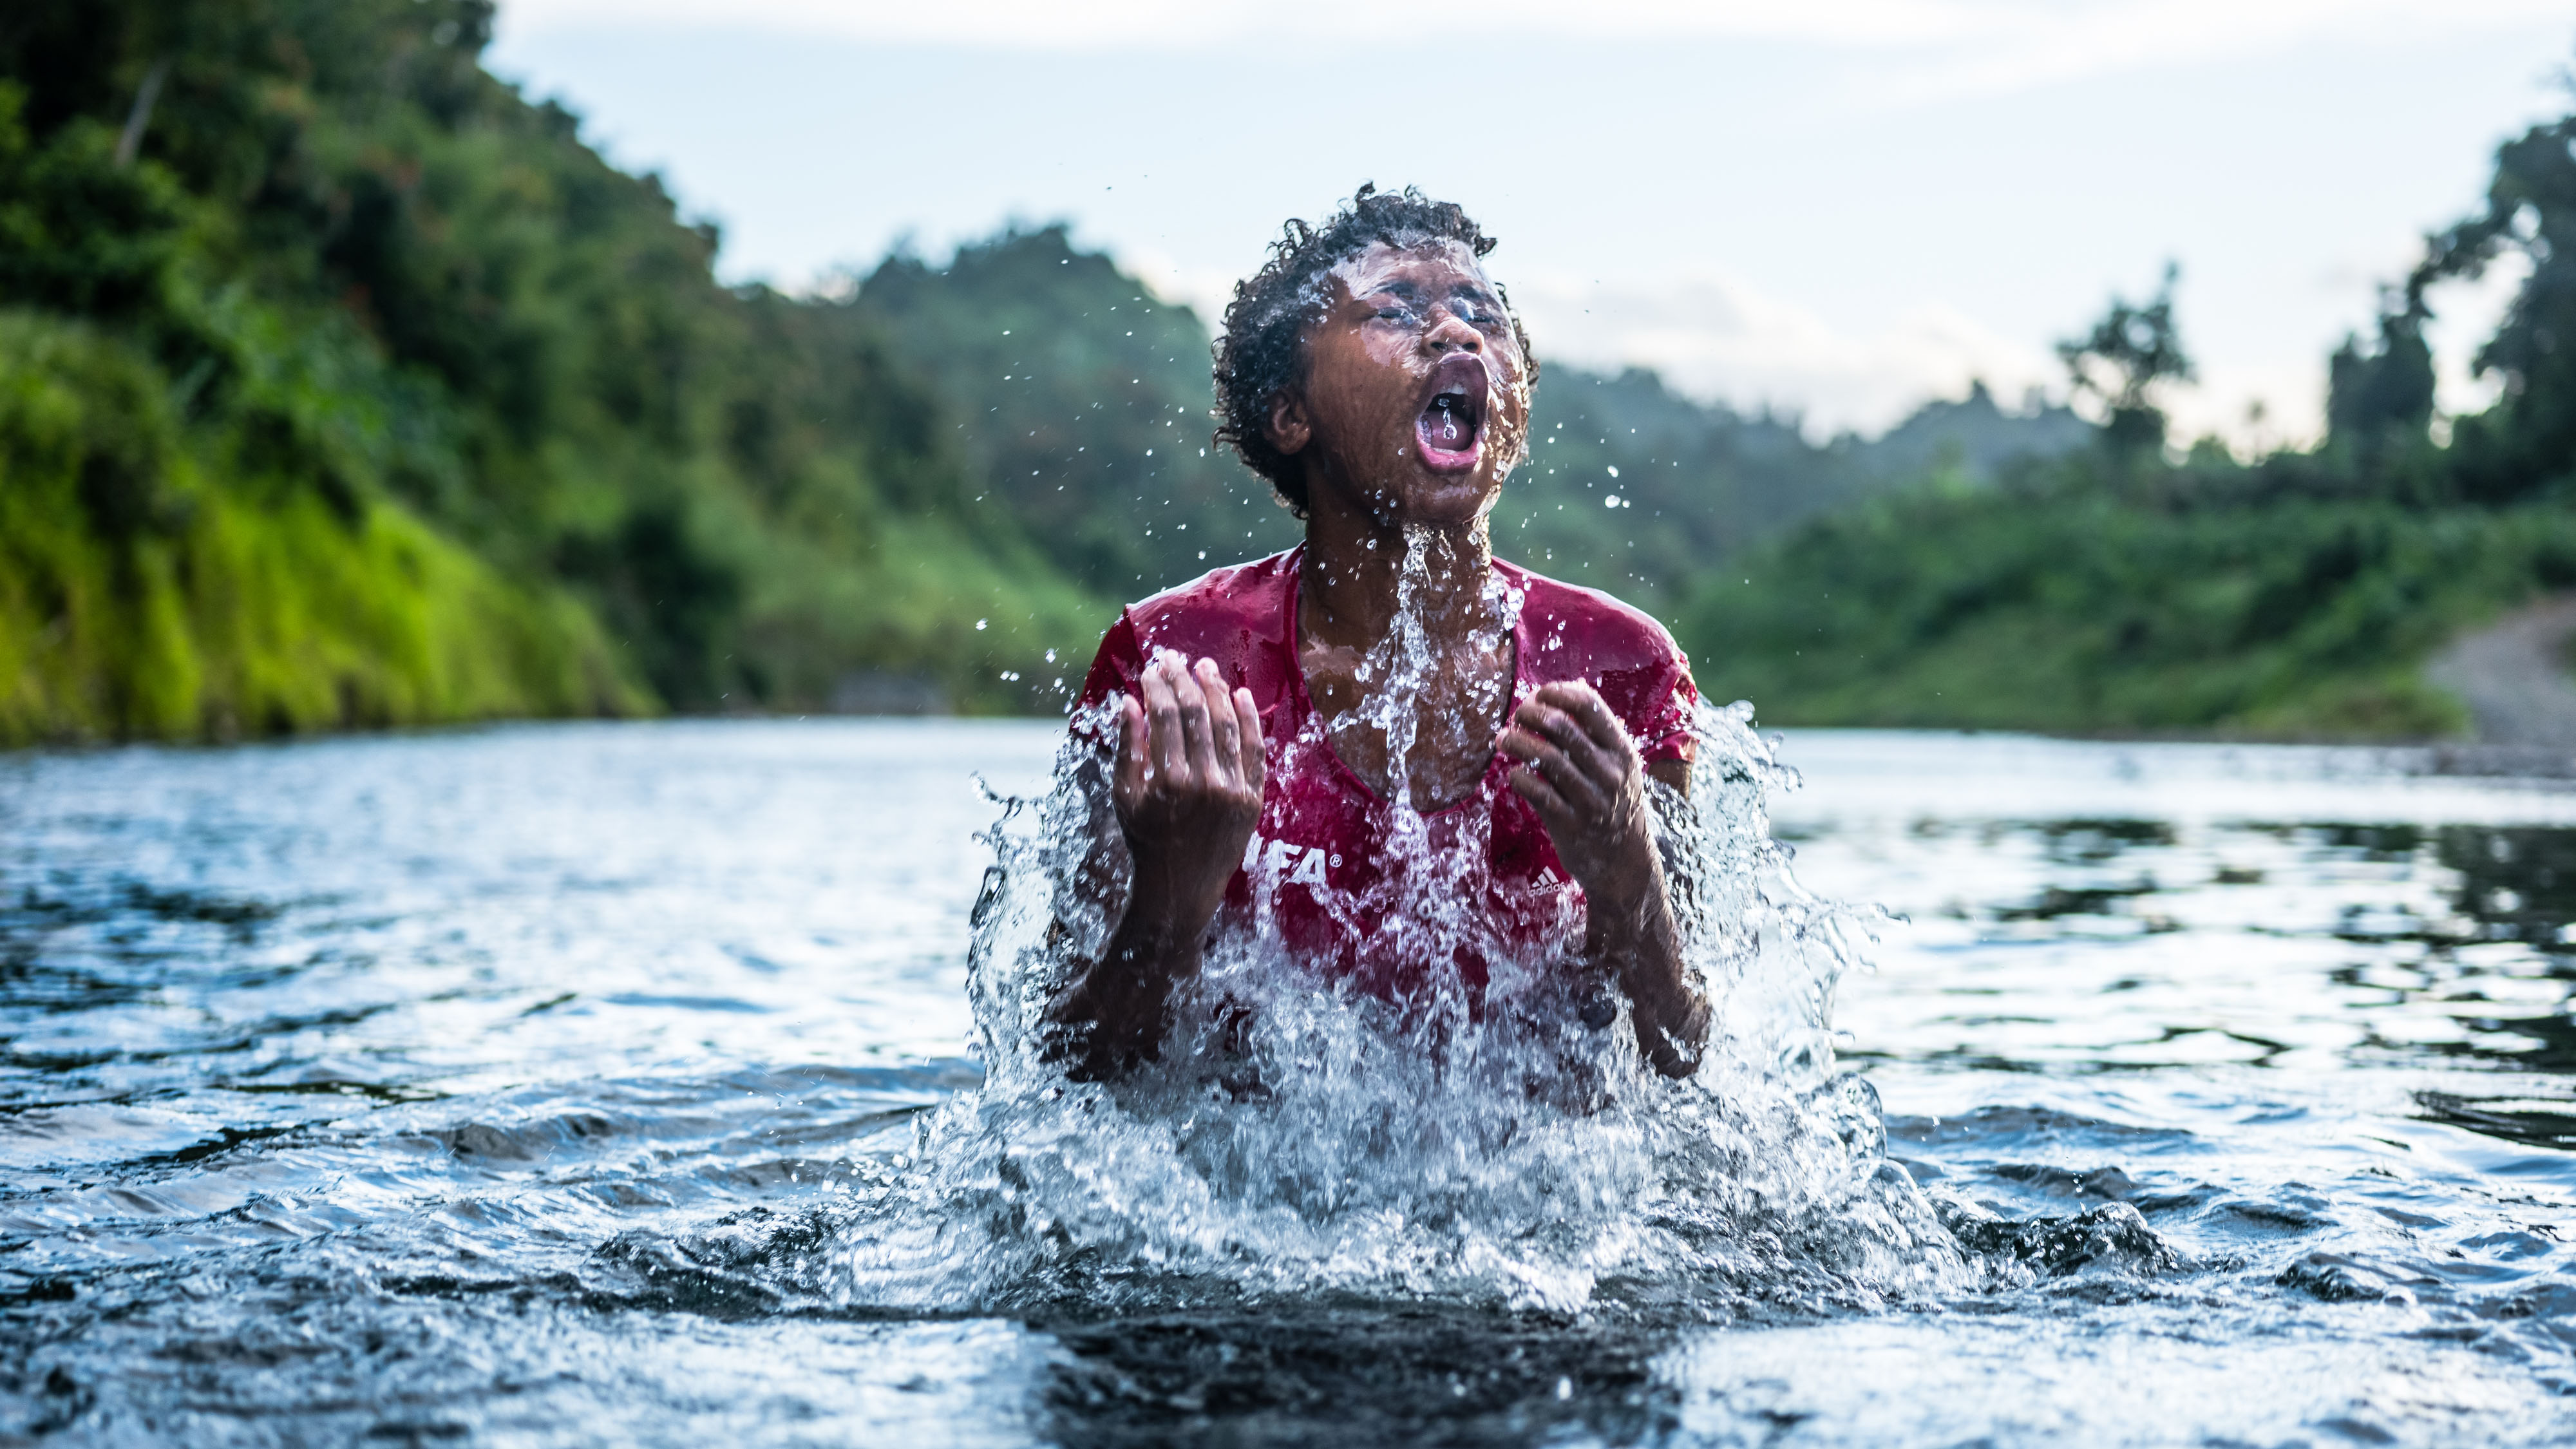 Ninia, 13, plays in the river near the Bucalevu village.